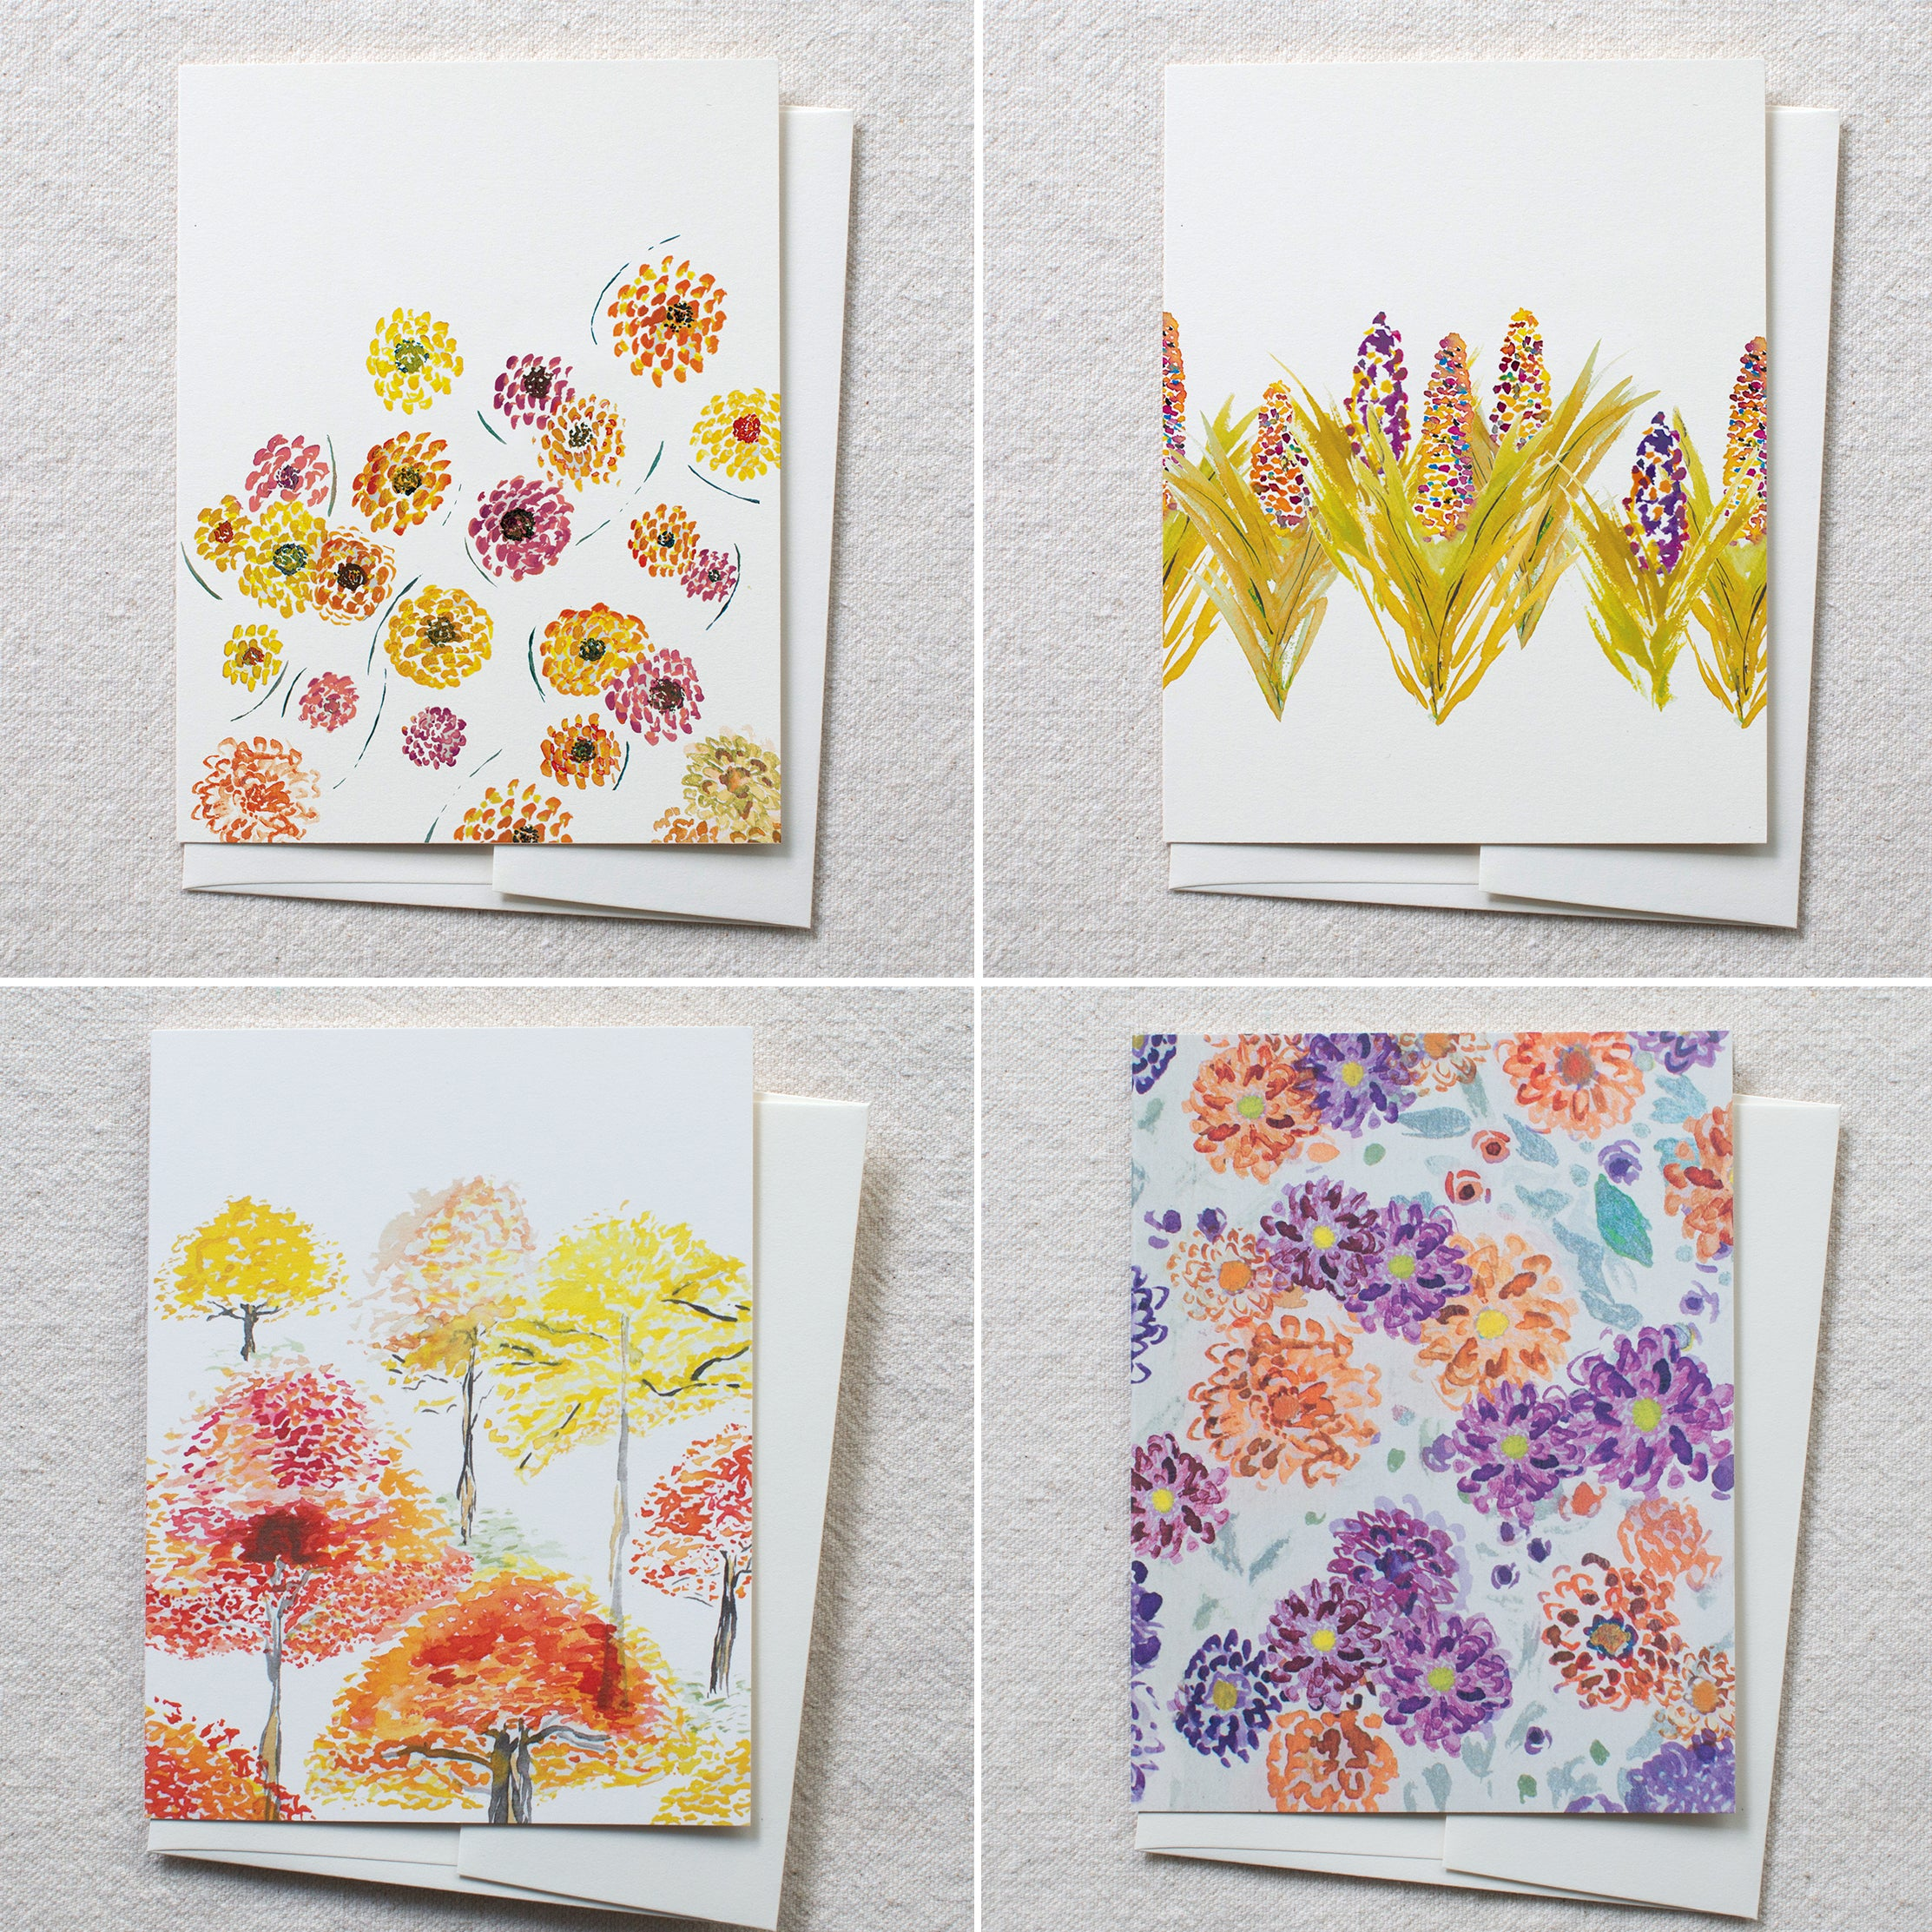 Autumn Garden Cards, set of 8